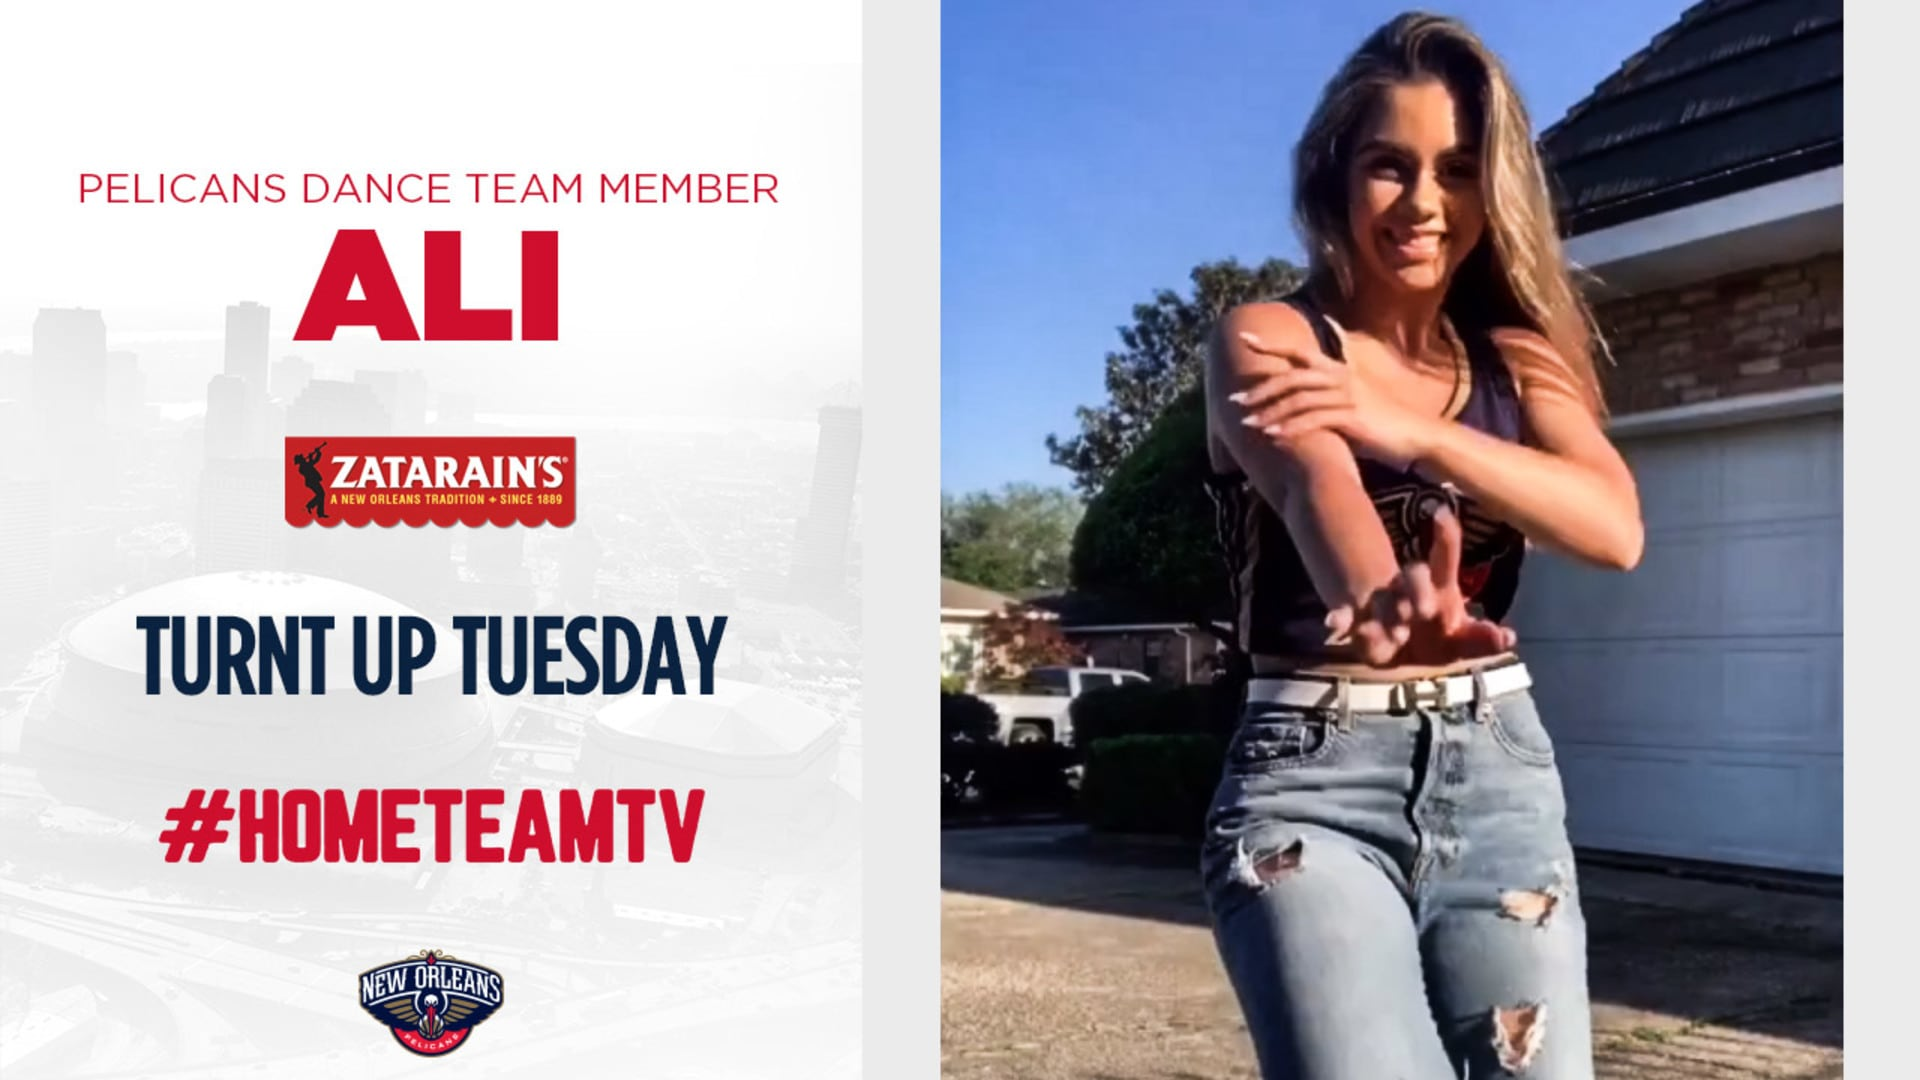 HomeTeamTV: Turnt Up Tuesday with Ali from the Pelicans Dance Team, 5/5/20